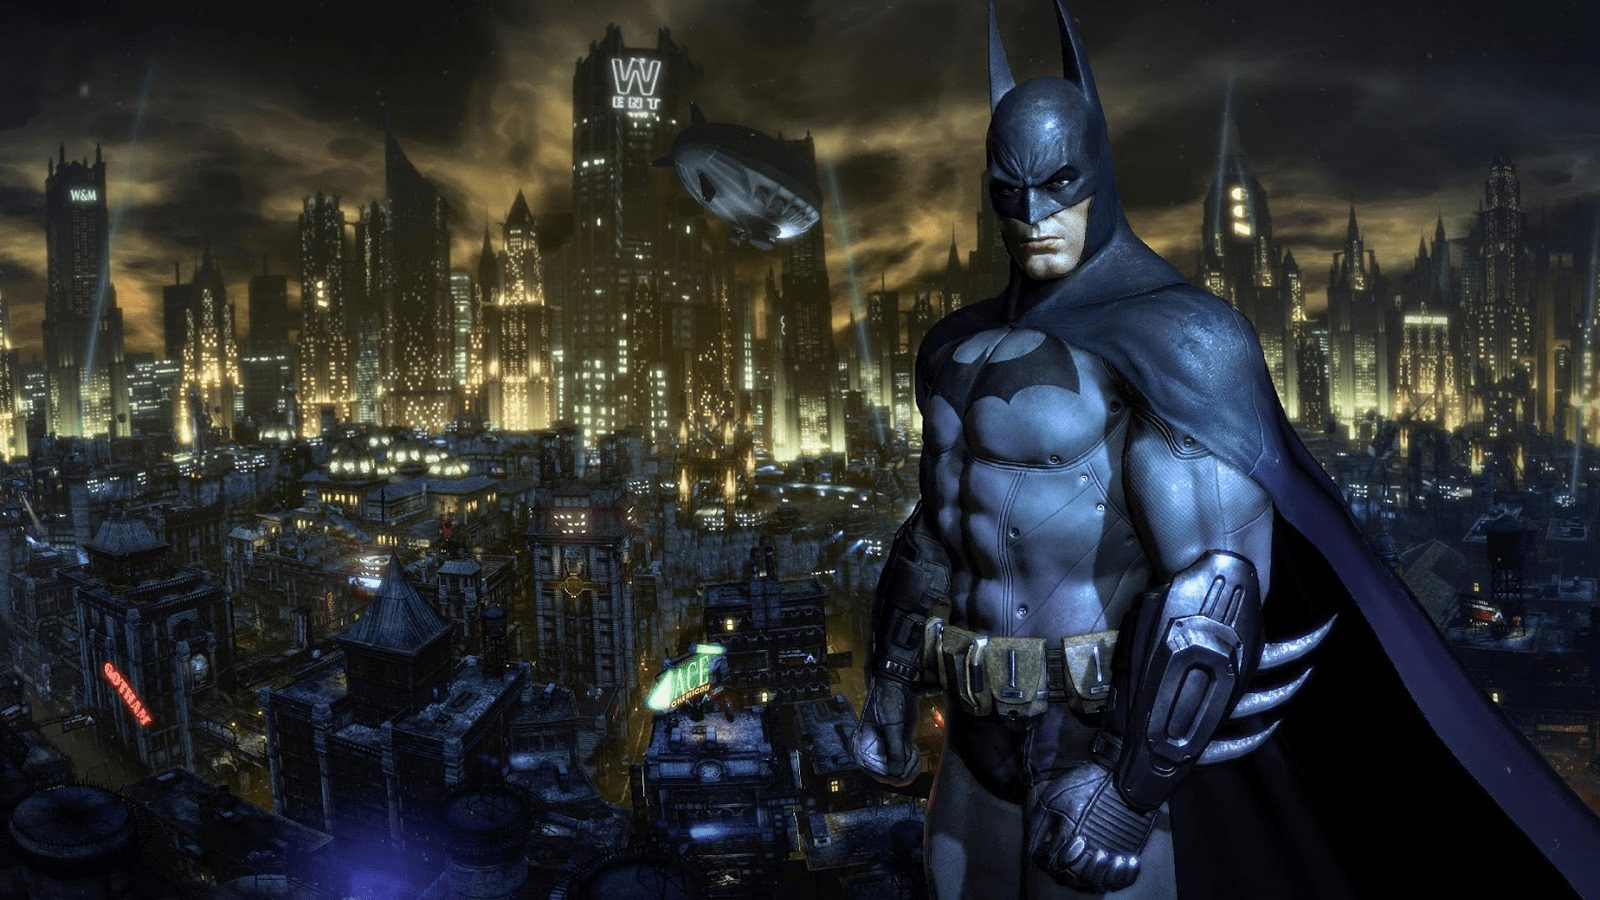 Batman Arkham City - Games for Low End PC in 2020